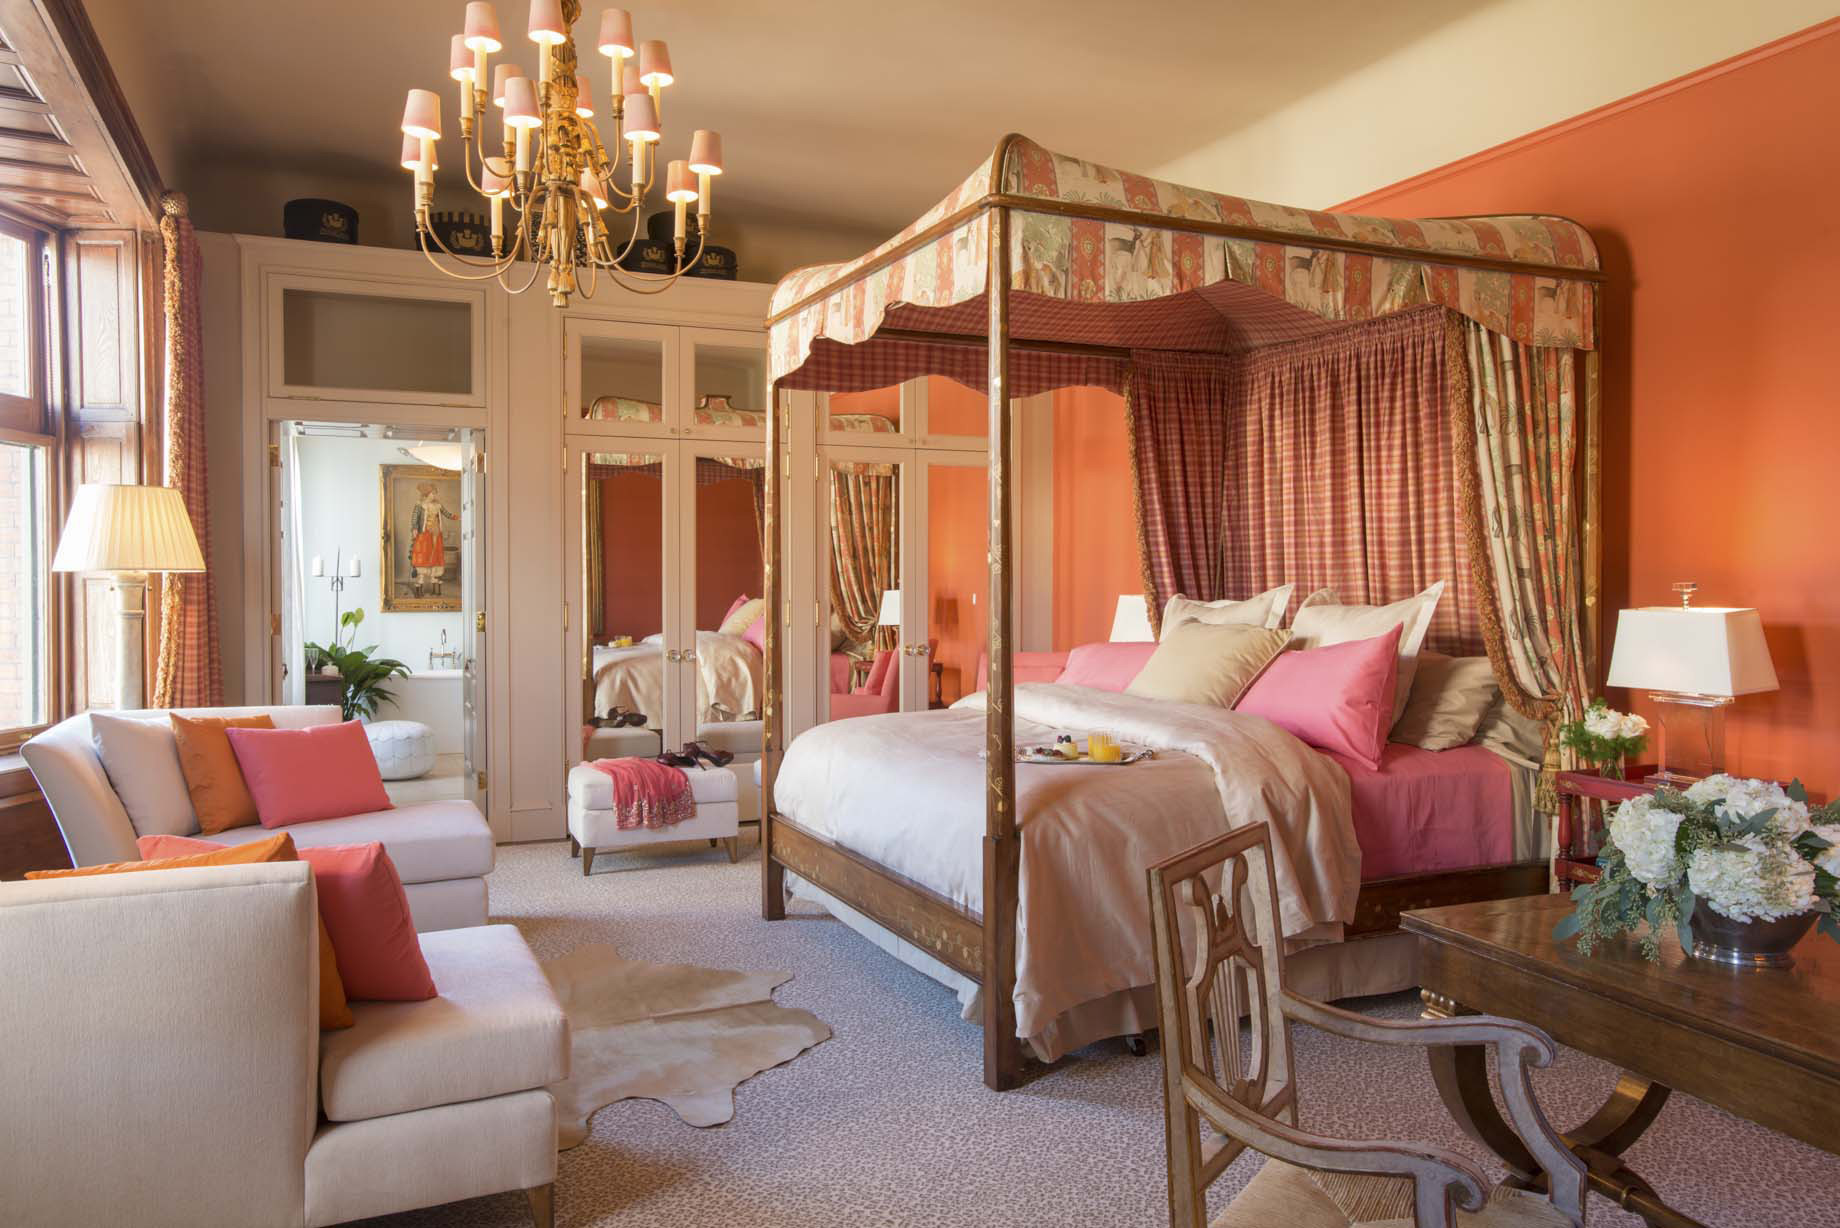 The best hotel rooms in baltimore baltimore sun for Best hotel rooms